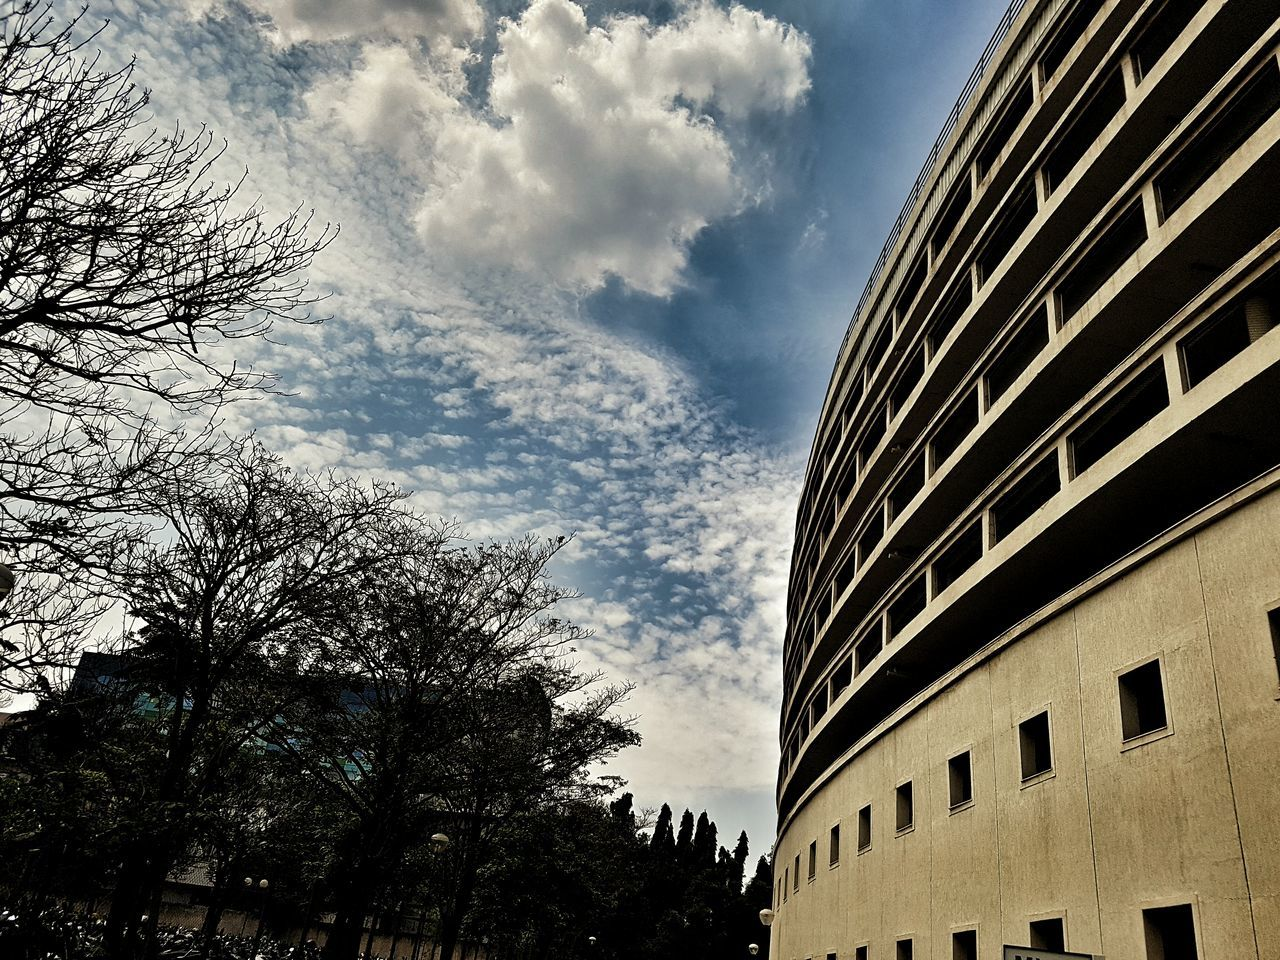 building exterior, tree, sky, architecture, built structure, low angle view, cloud - sky, no people, window, outdoors, day, city, nature